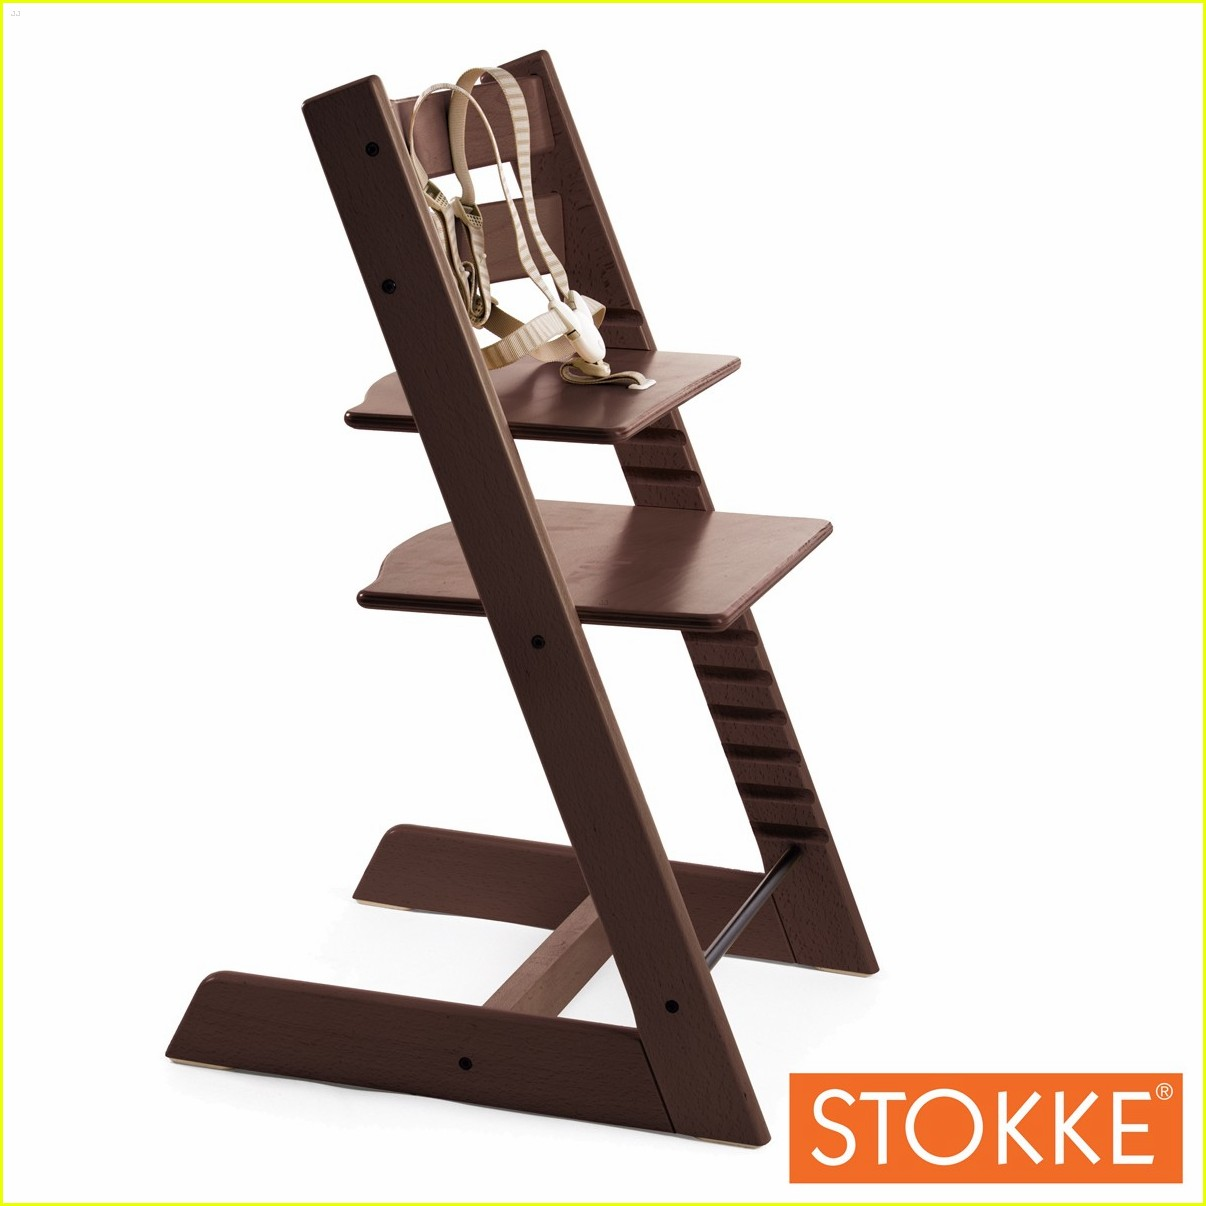 stokke high chair win free stokke baby carrier chair